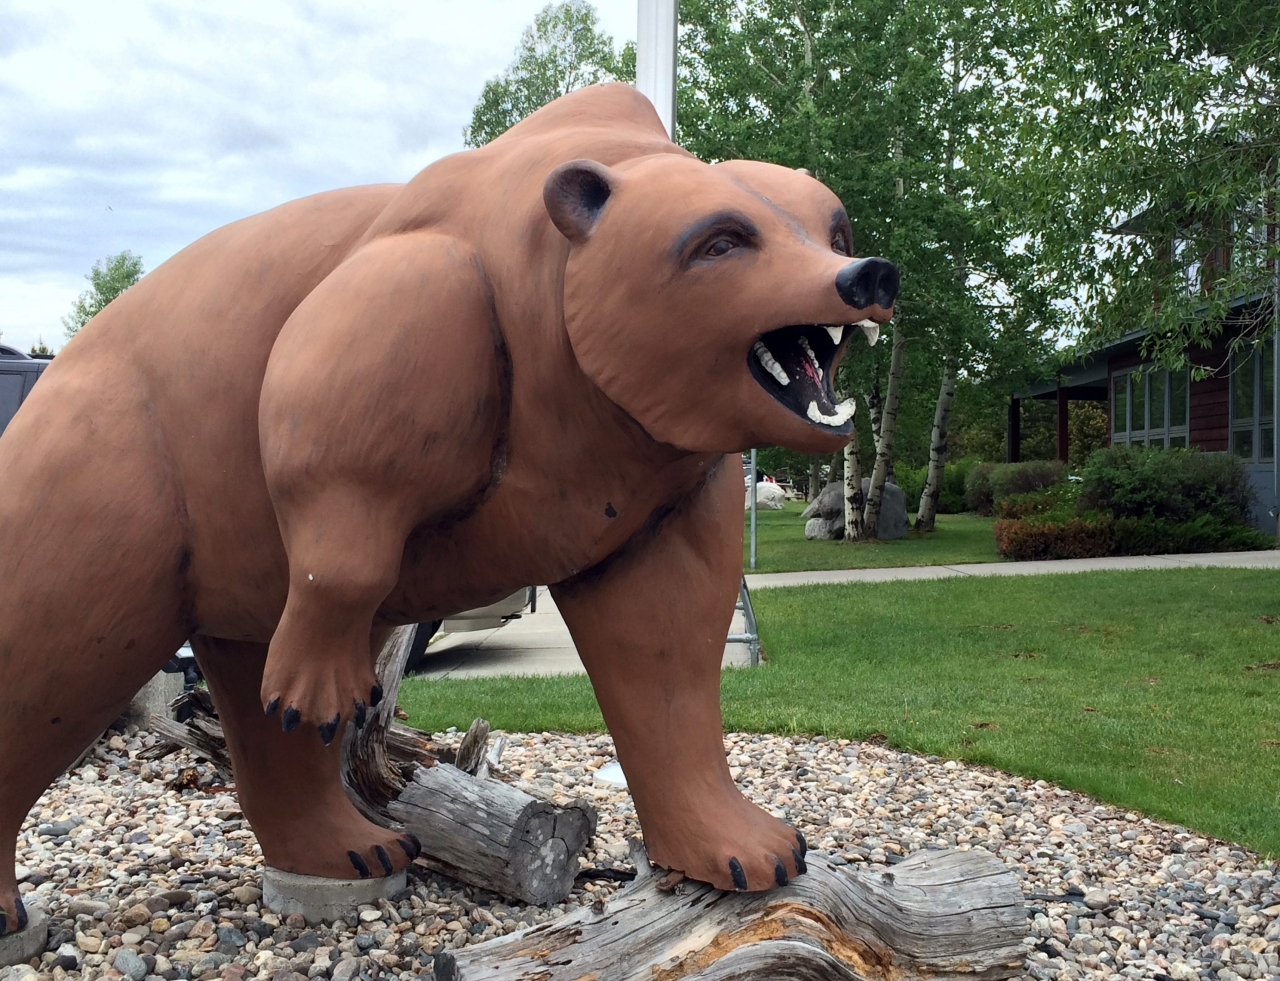 Yellowstone Part V: Campground Review of Yellowstone Grizzly